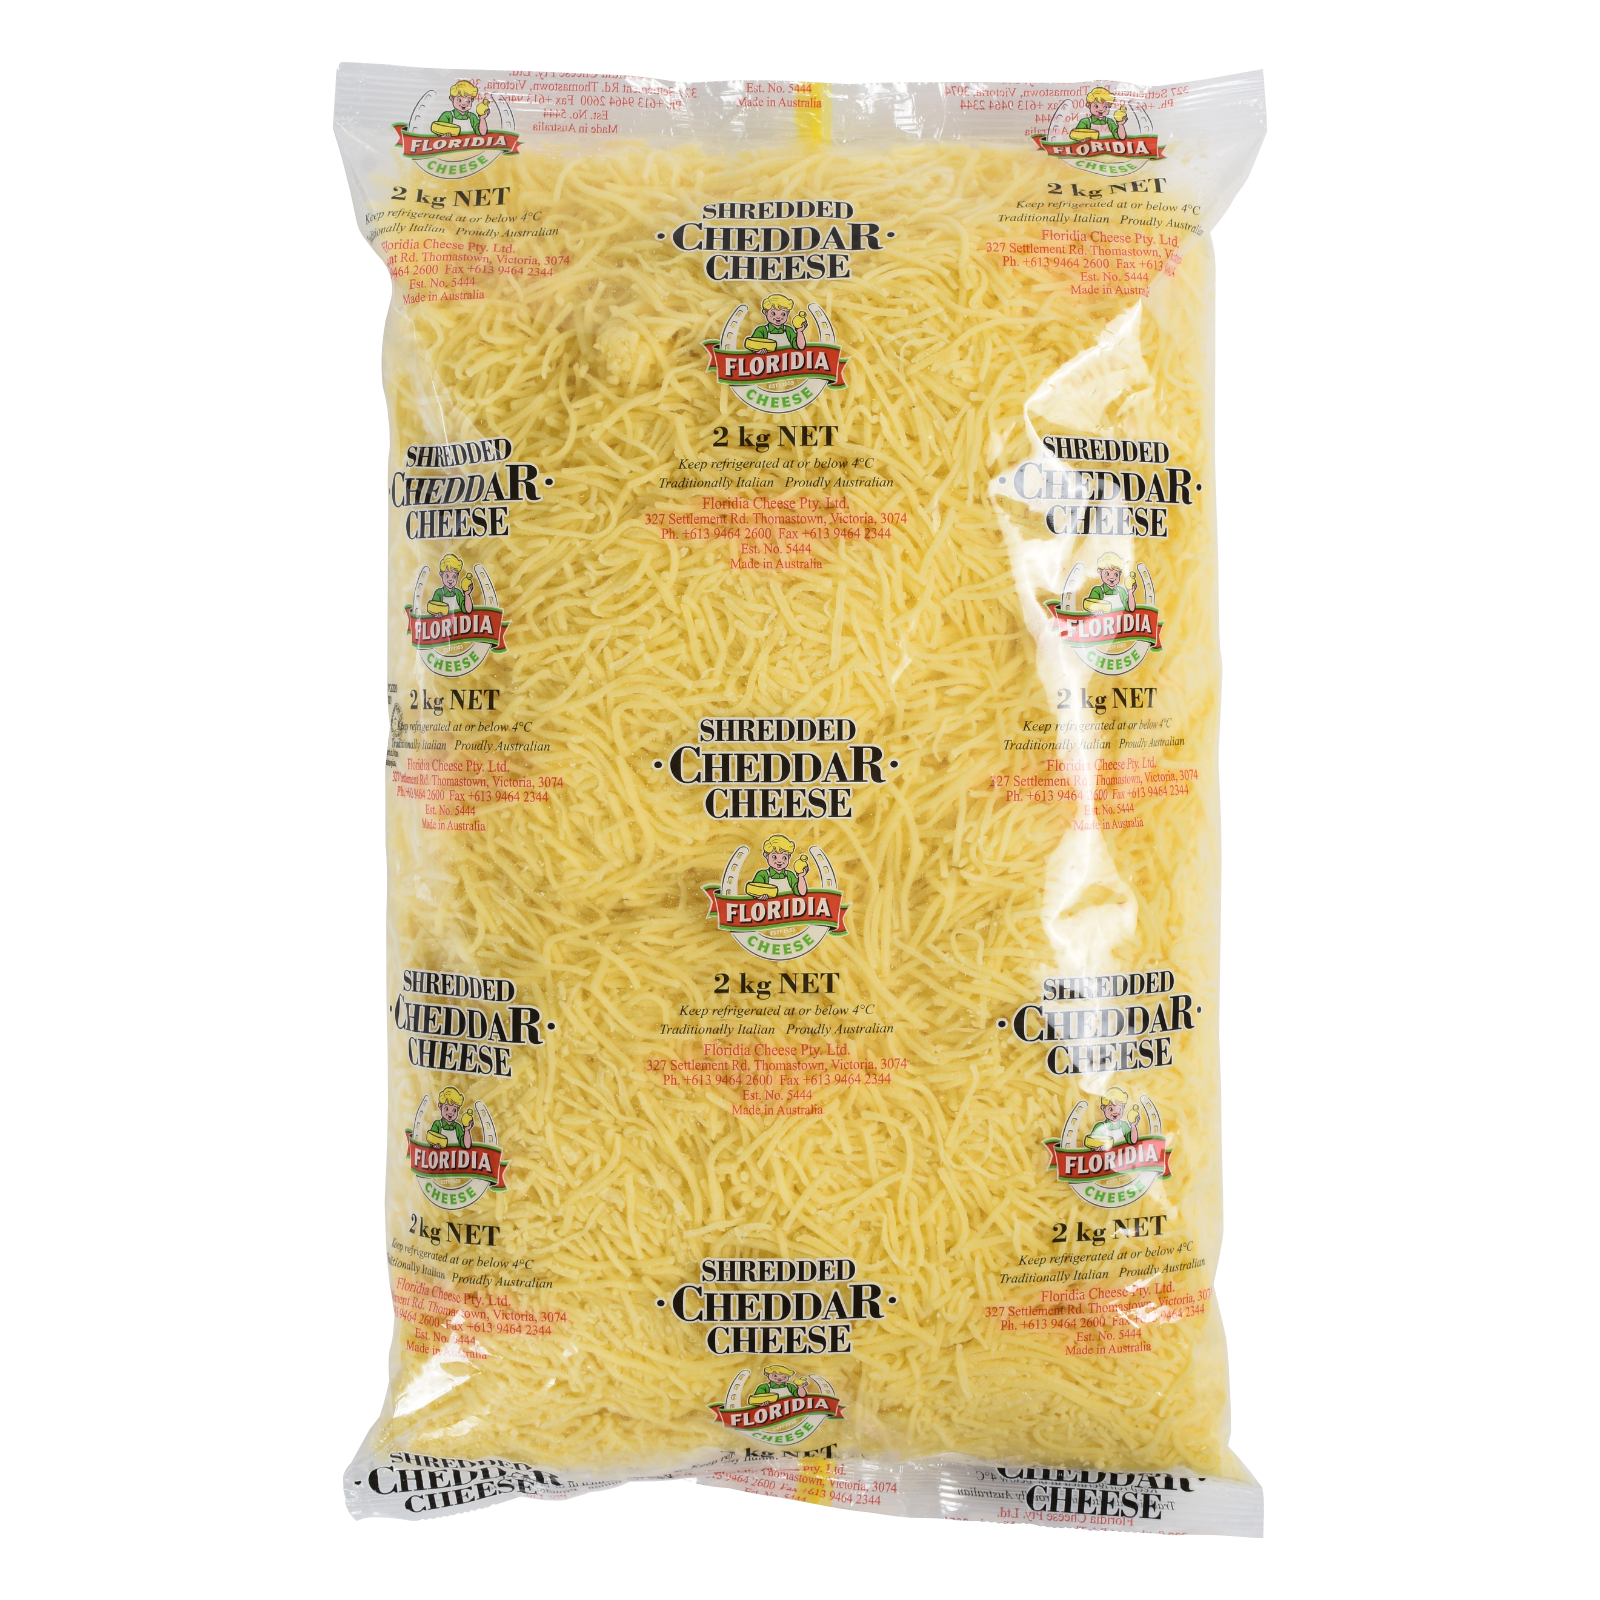 floridia shredded cheddar cheese.png